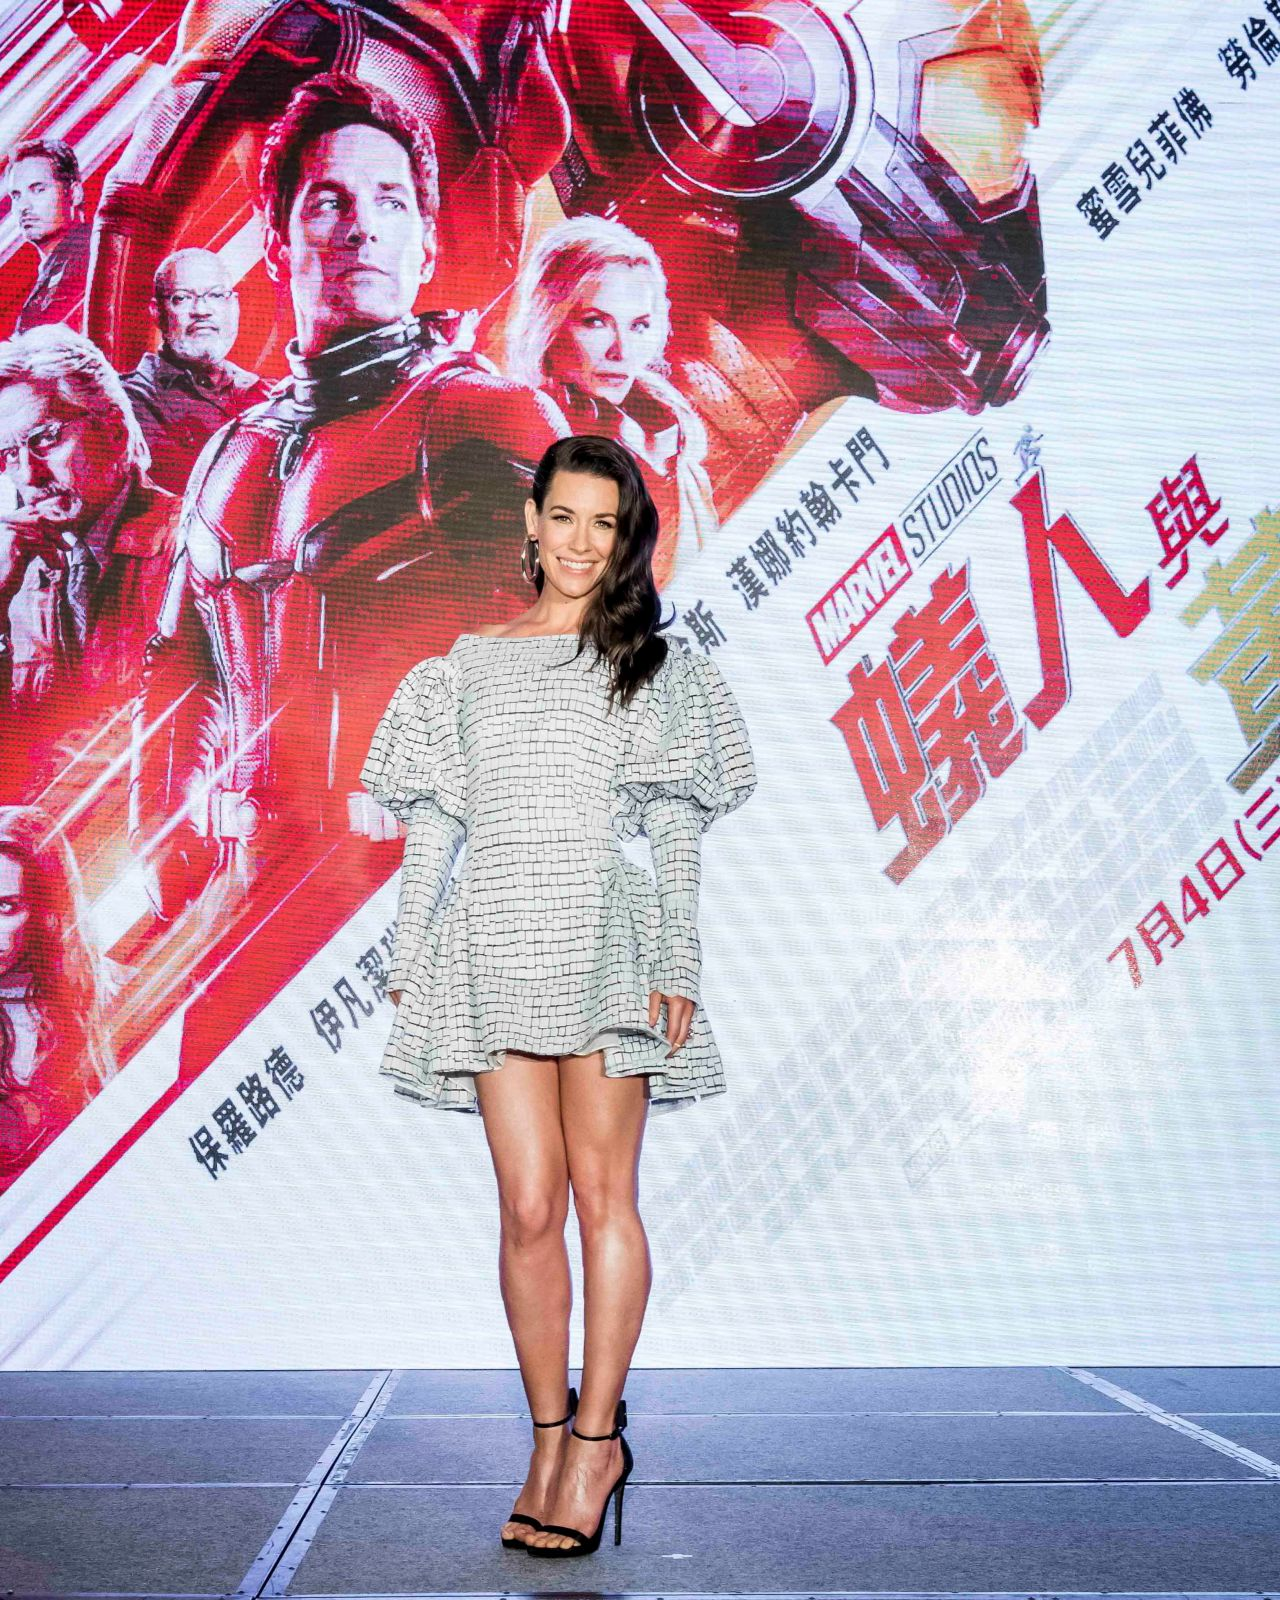 https://celebmafia.com/wp-content/uploads/2018/06/evangeline-lilly-ant-man-and-the-wasp-press-conference-in-taipei-6.jpg